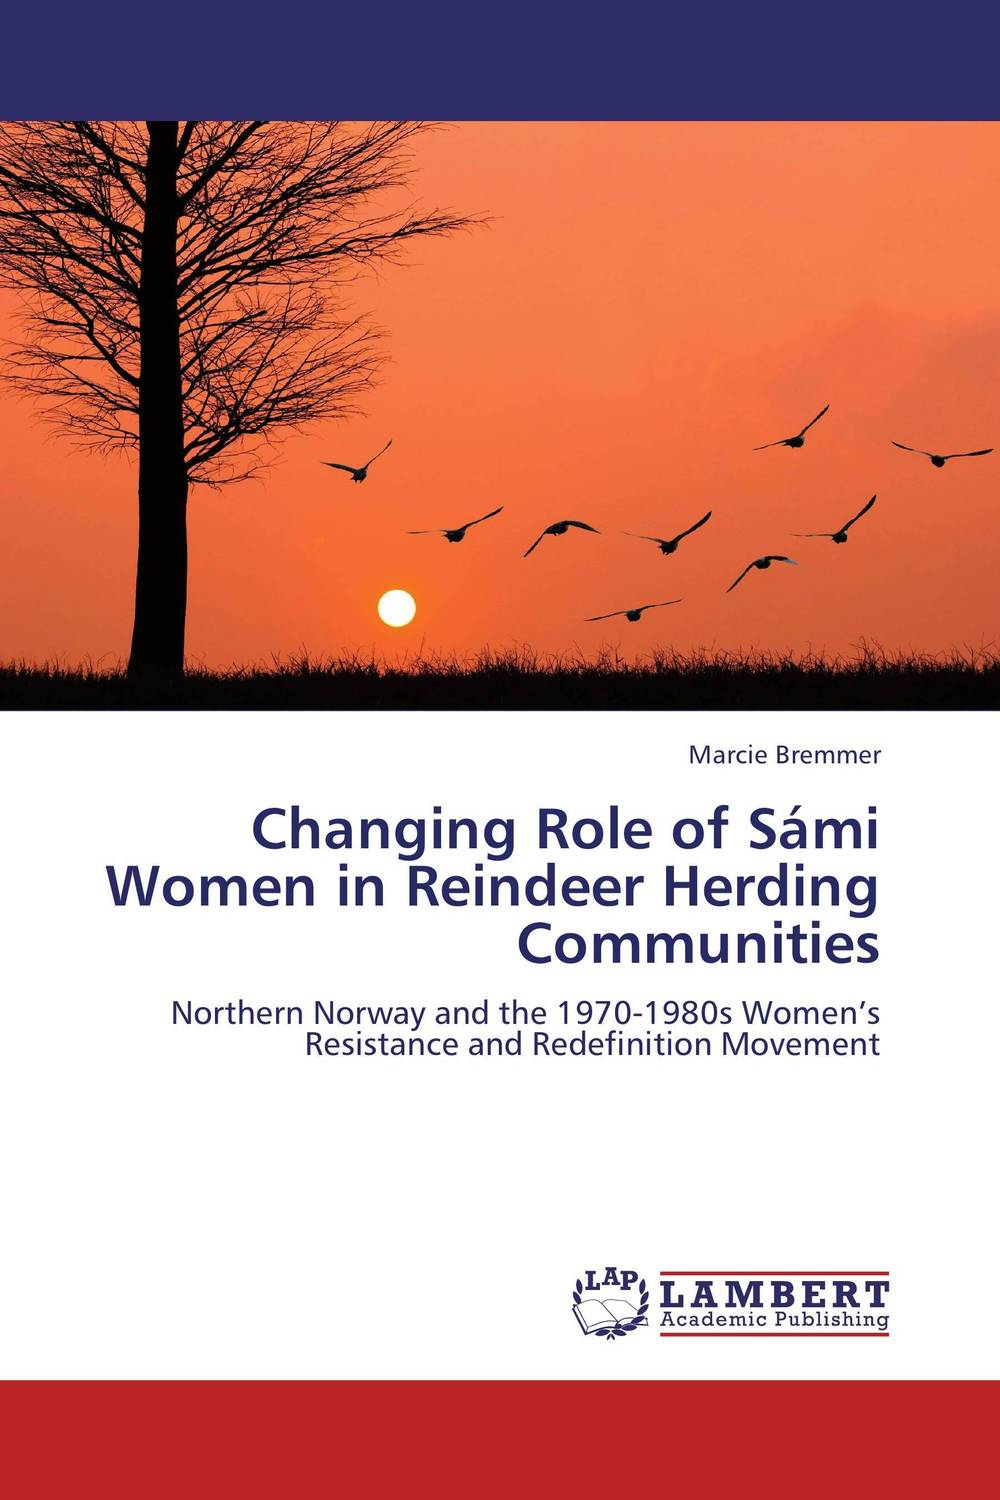 Changing Role of Sami Women in Reindeer Herding Communities voluntary associations in tsarist russia – science patriotism and civil society